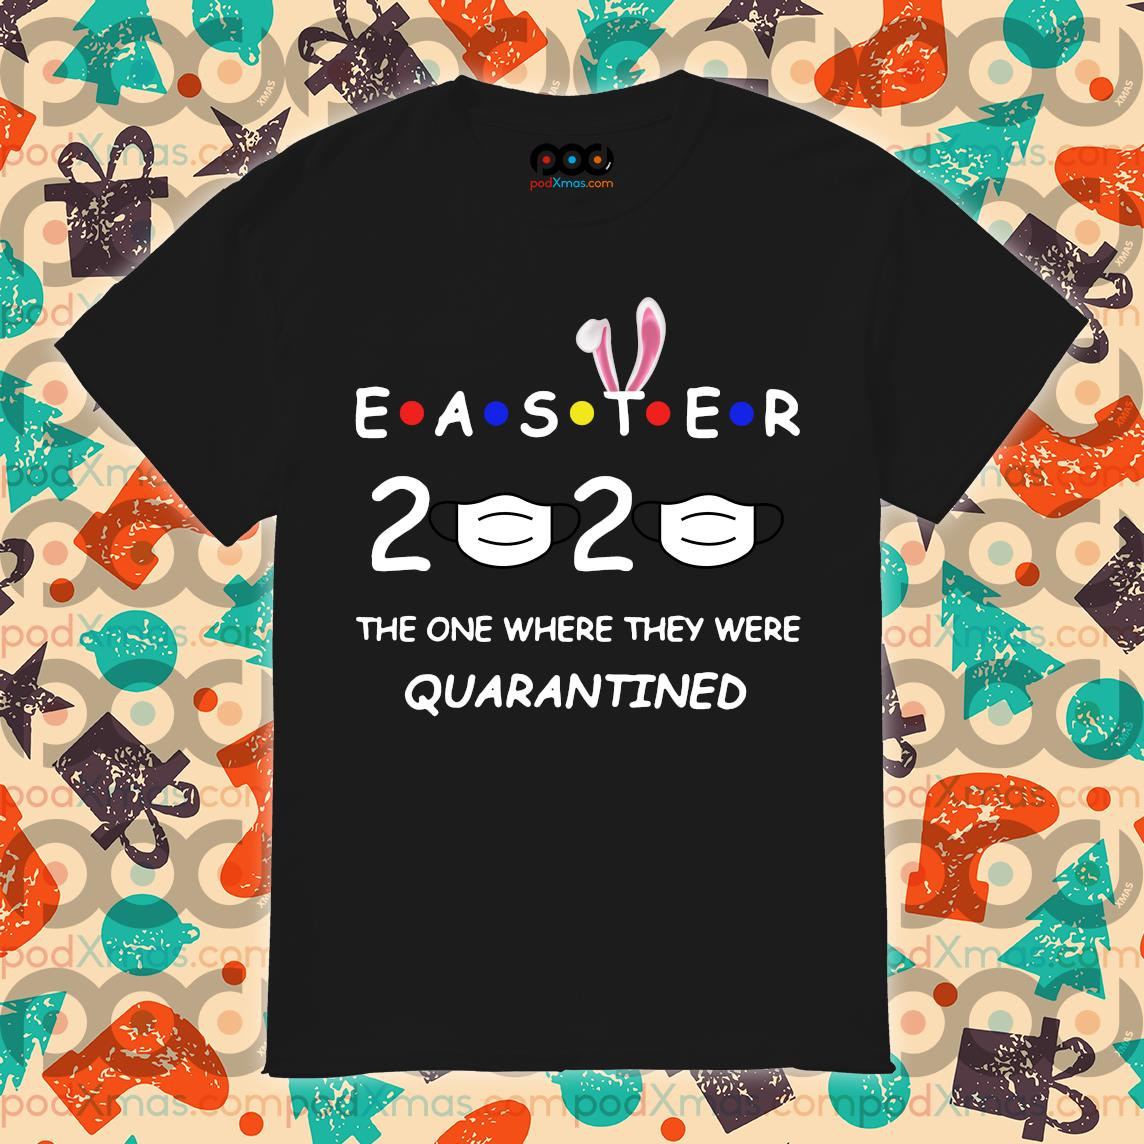 Easter 2020 the one where they were quarantined shirt